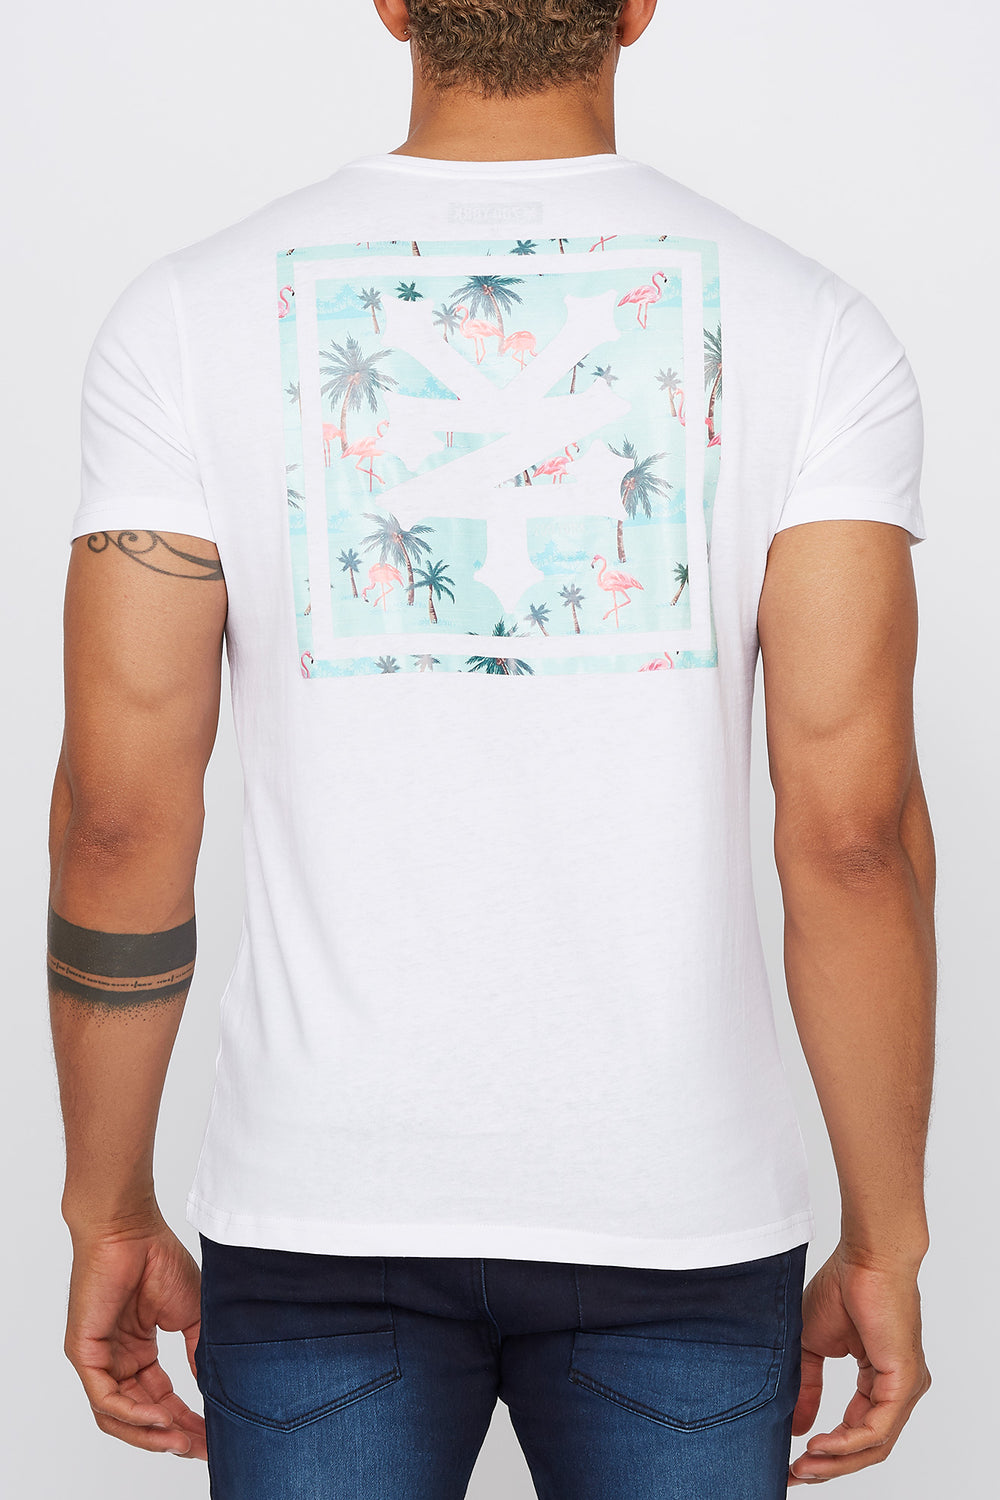 T-Shirt Flamants Roses Zoo York Homme Blanc